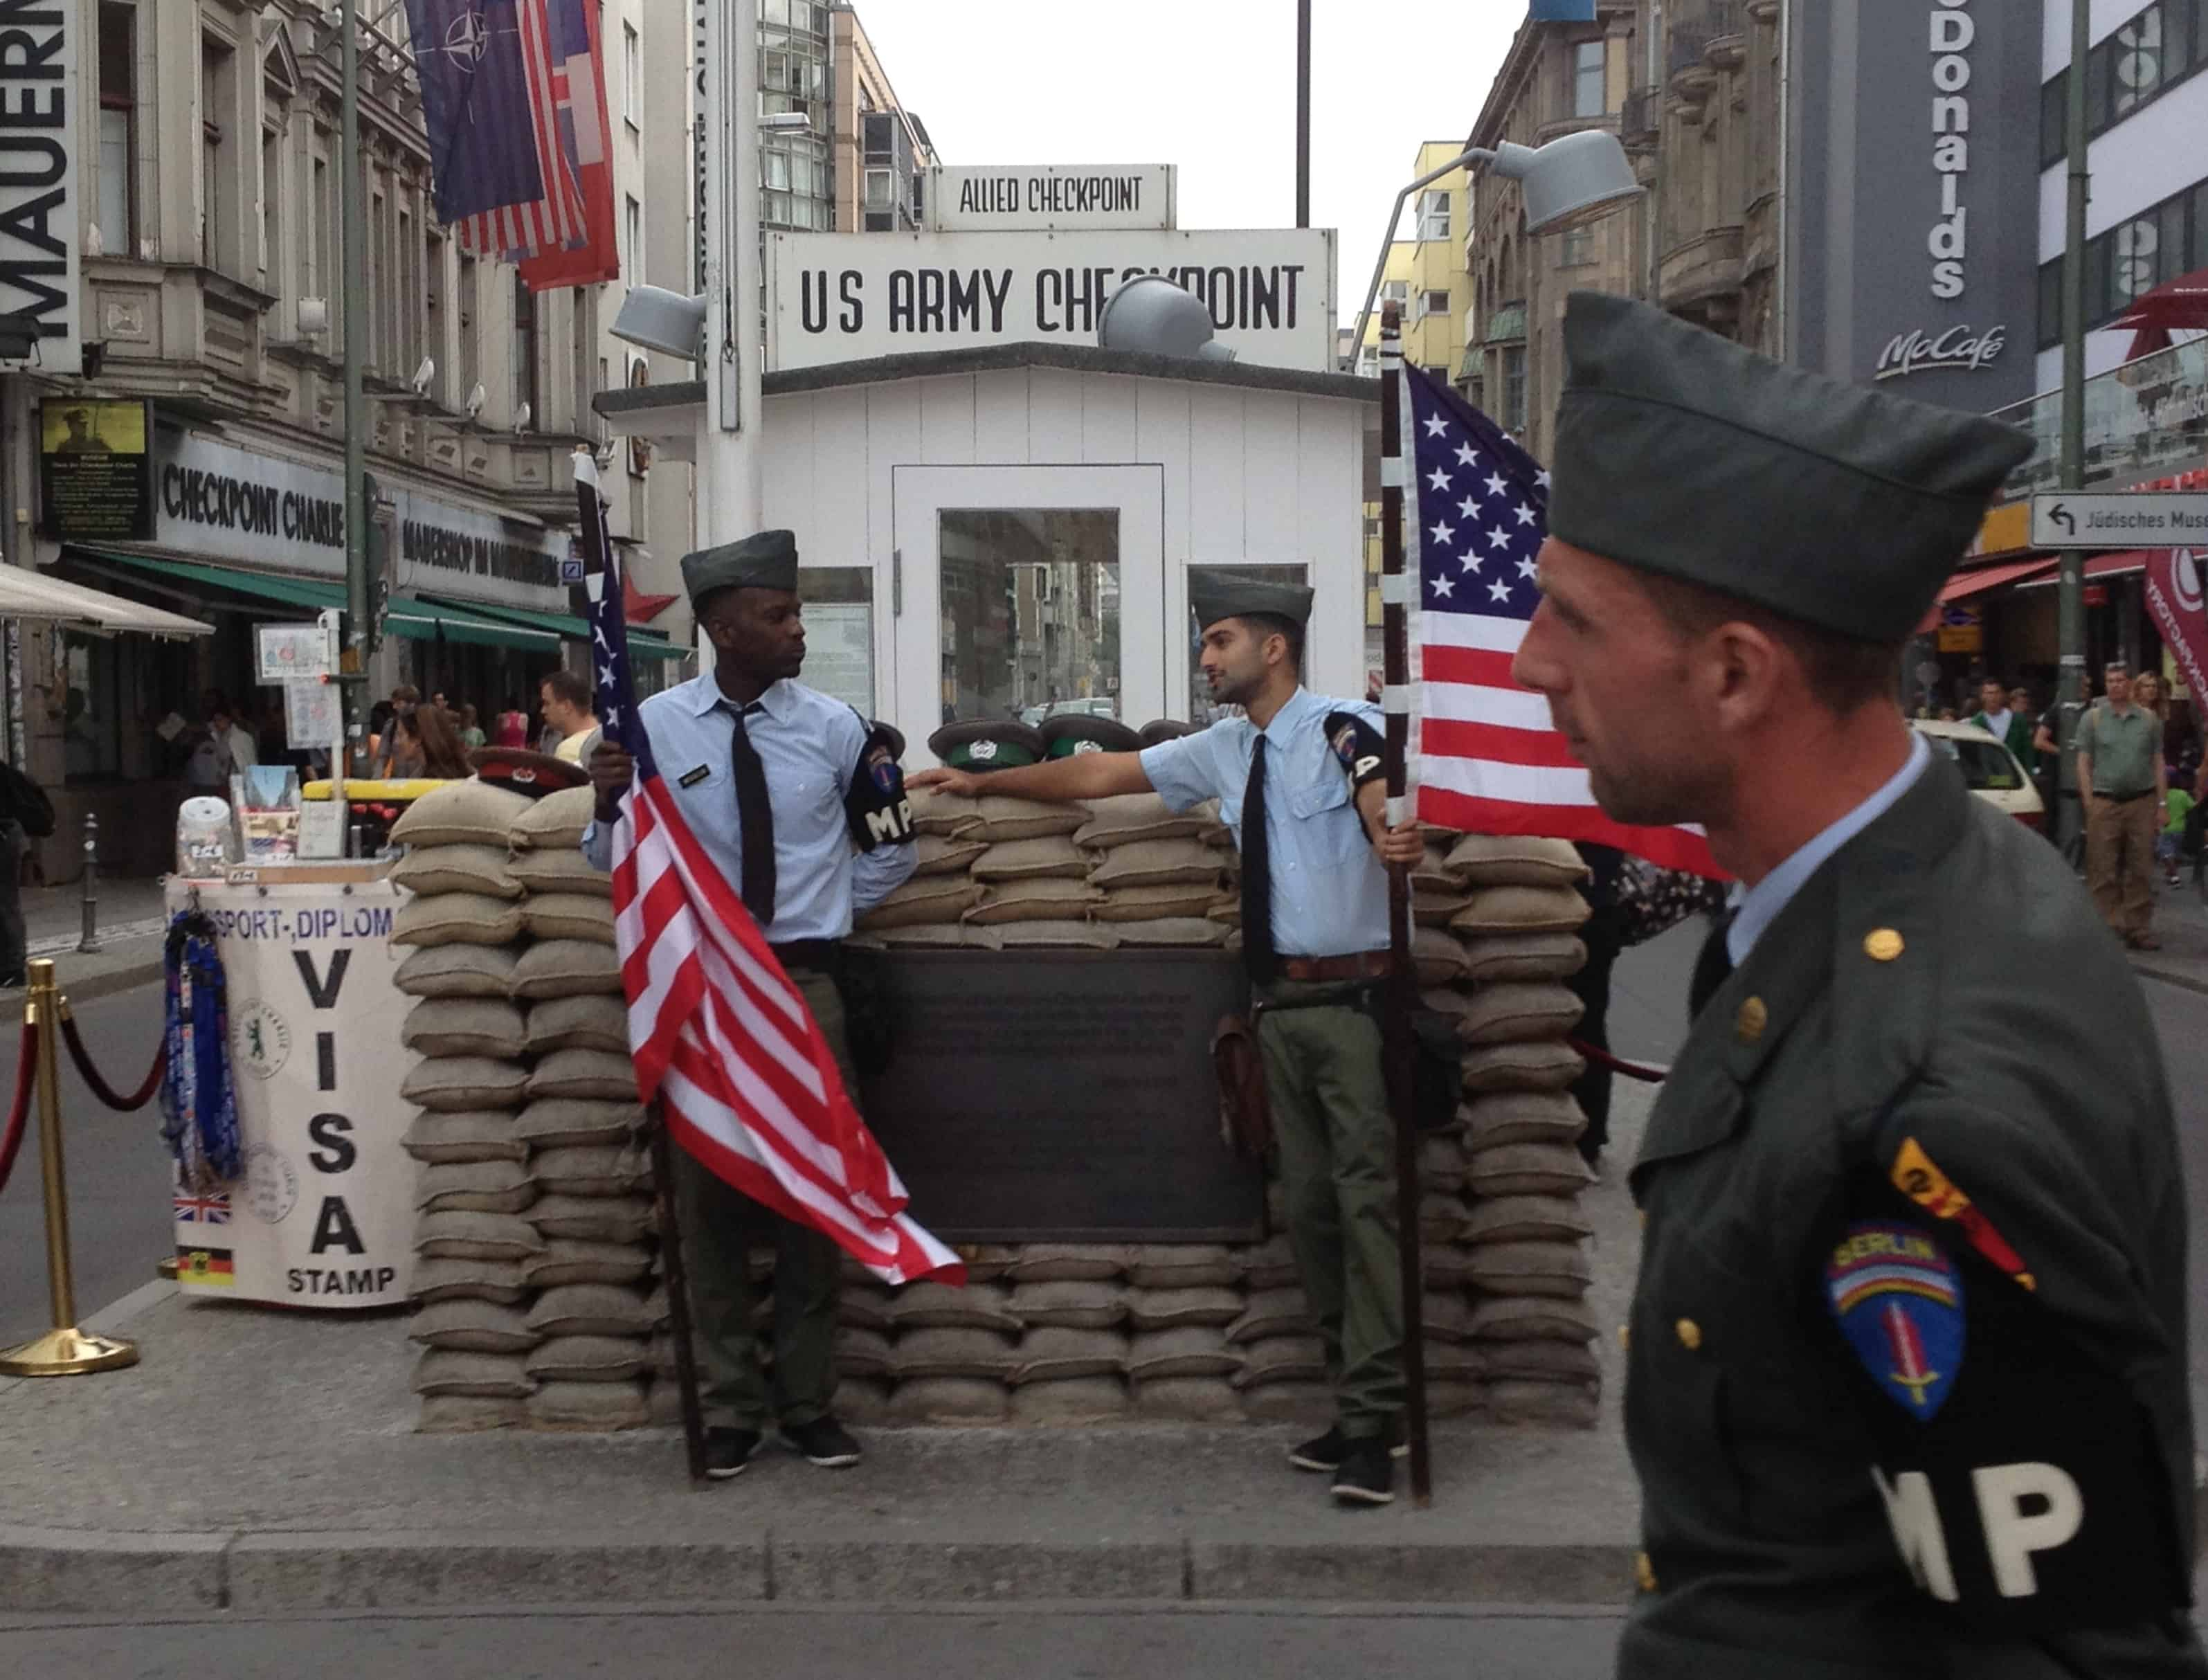 Reasons to Visit Berlin: Check Point Charlie is one of the top things to do in Berlin